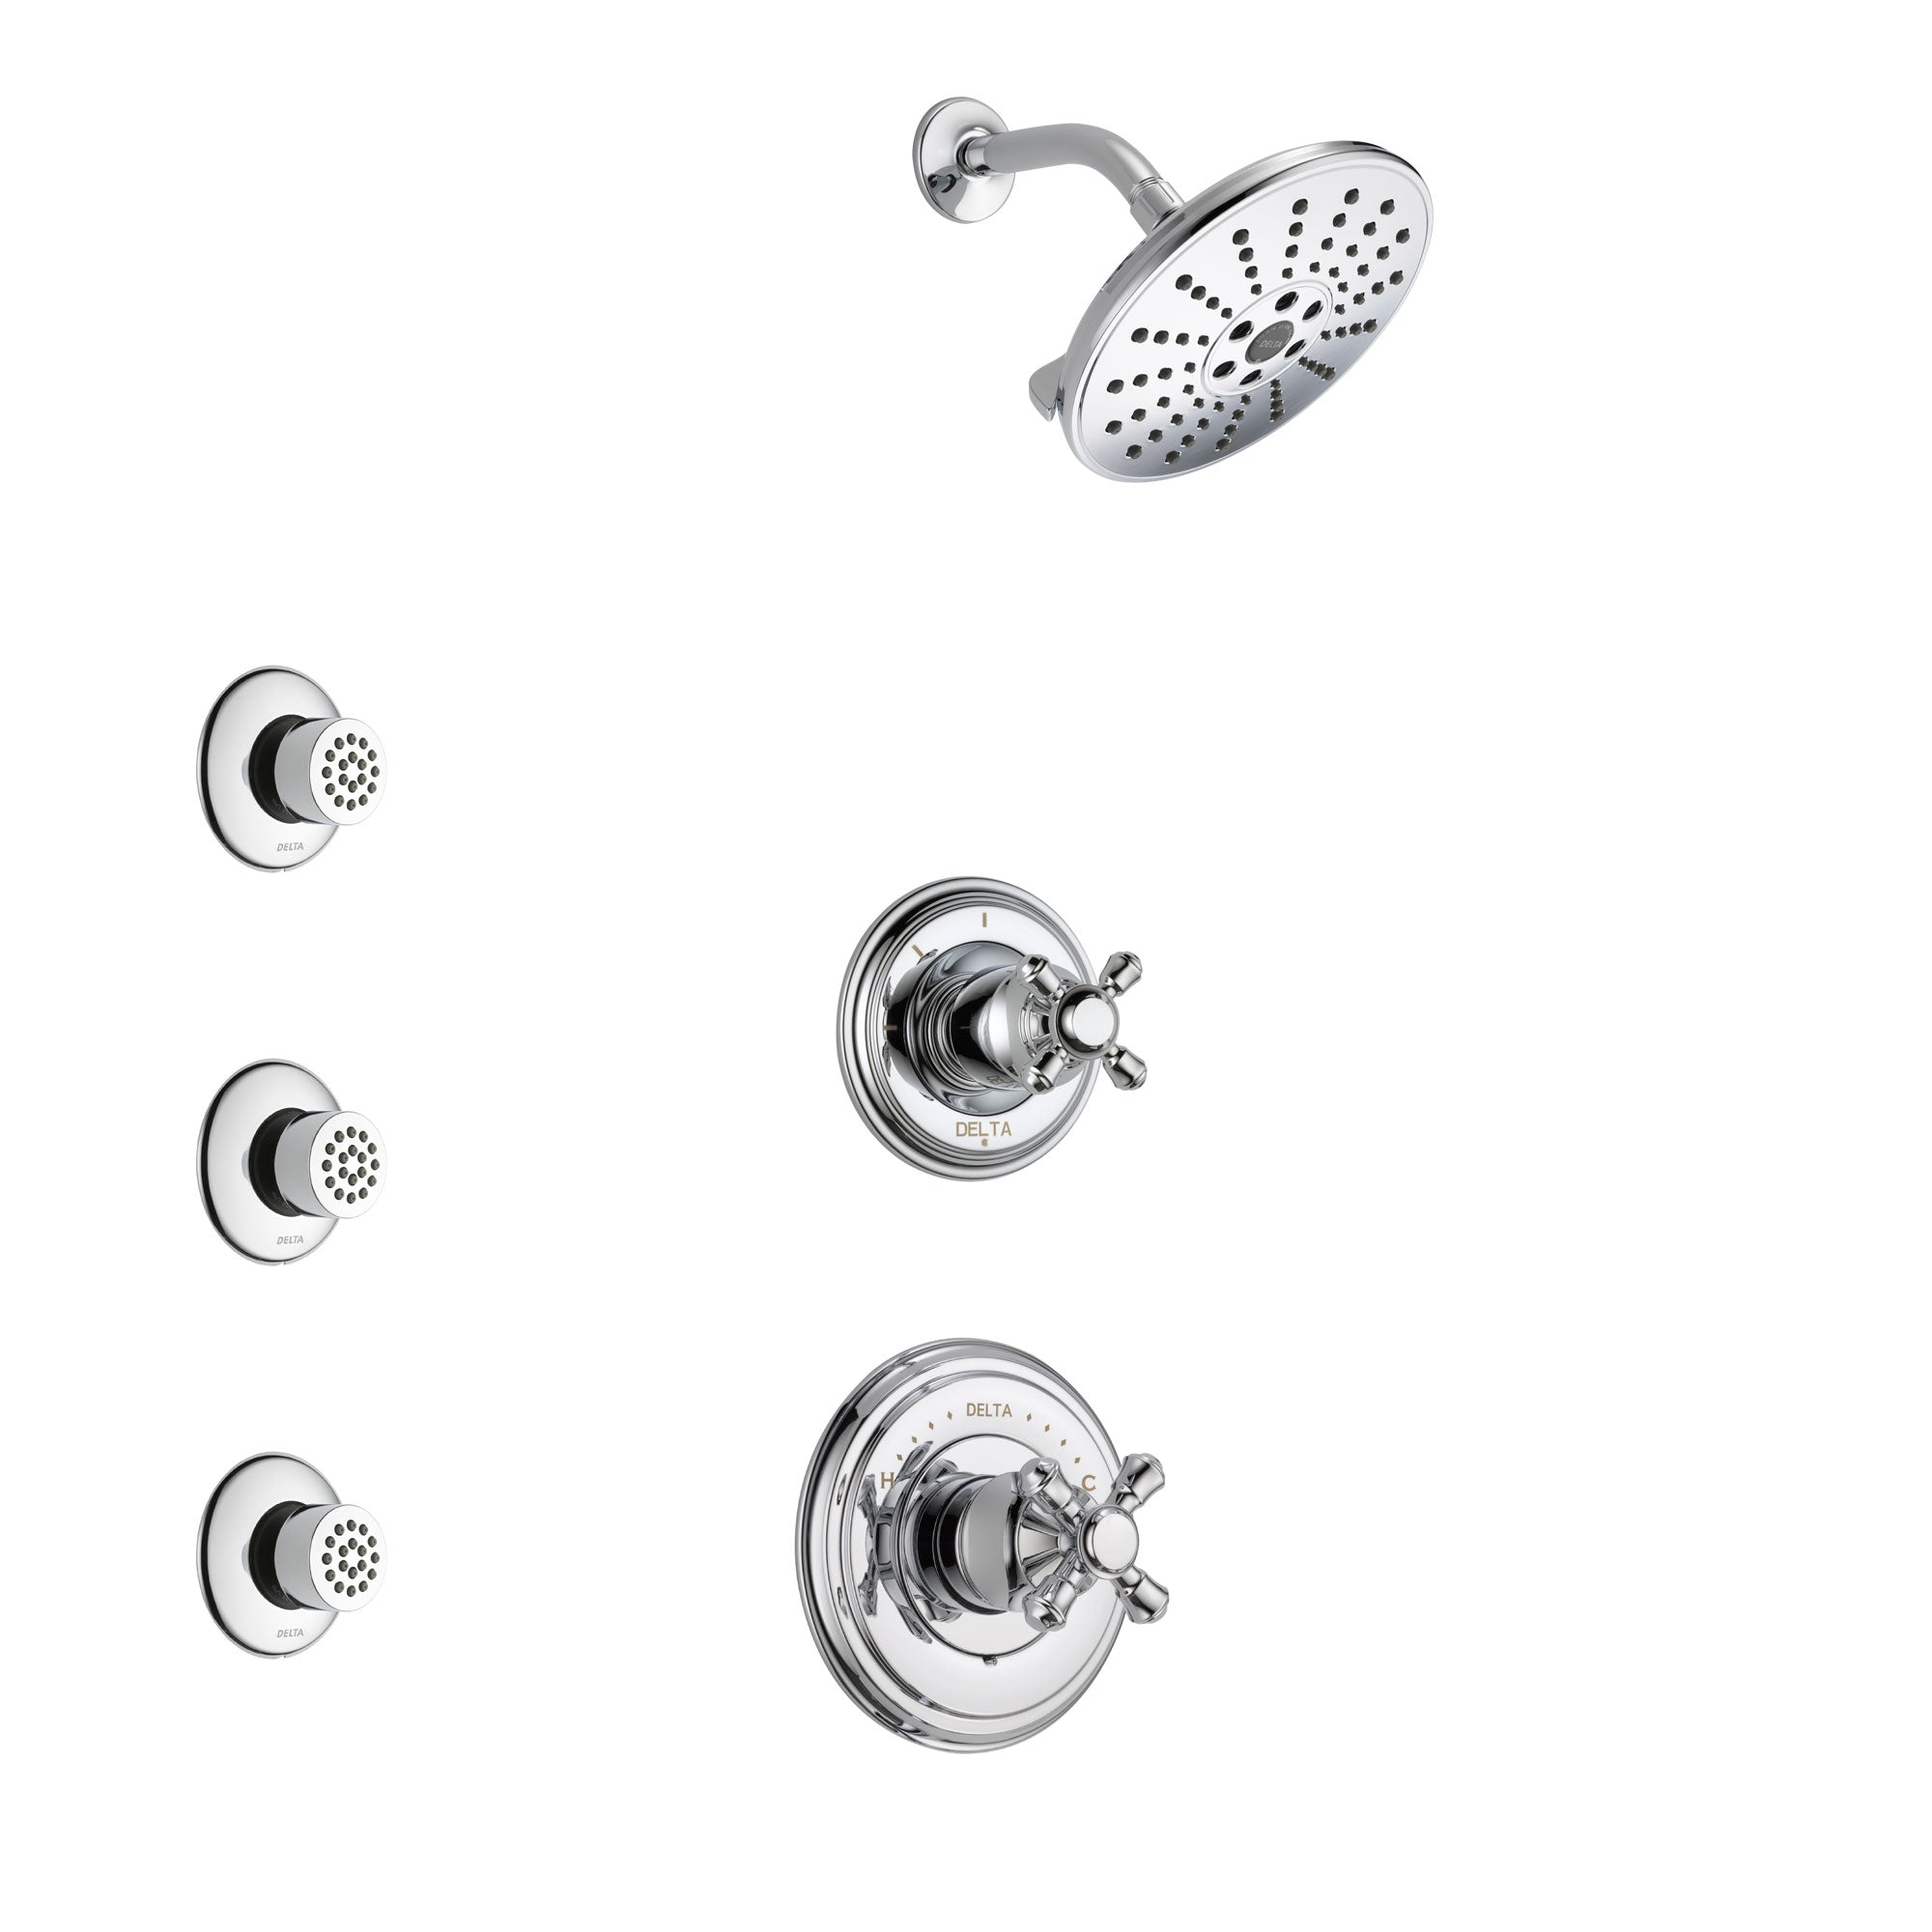 Delta Cassidy Chrome Finish Shower System with Control Handle, 3-Setting Diverter, Showerhead, and 3 Body Sprays SS149728